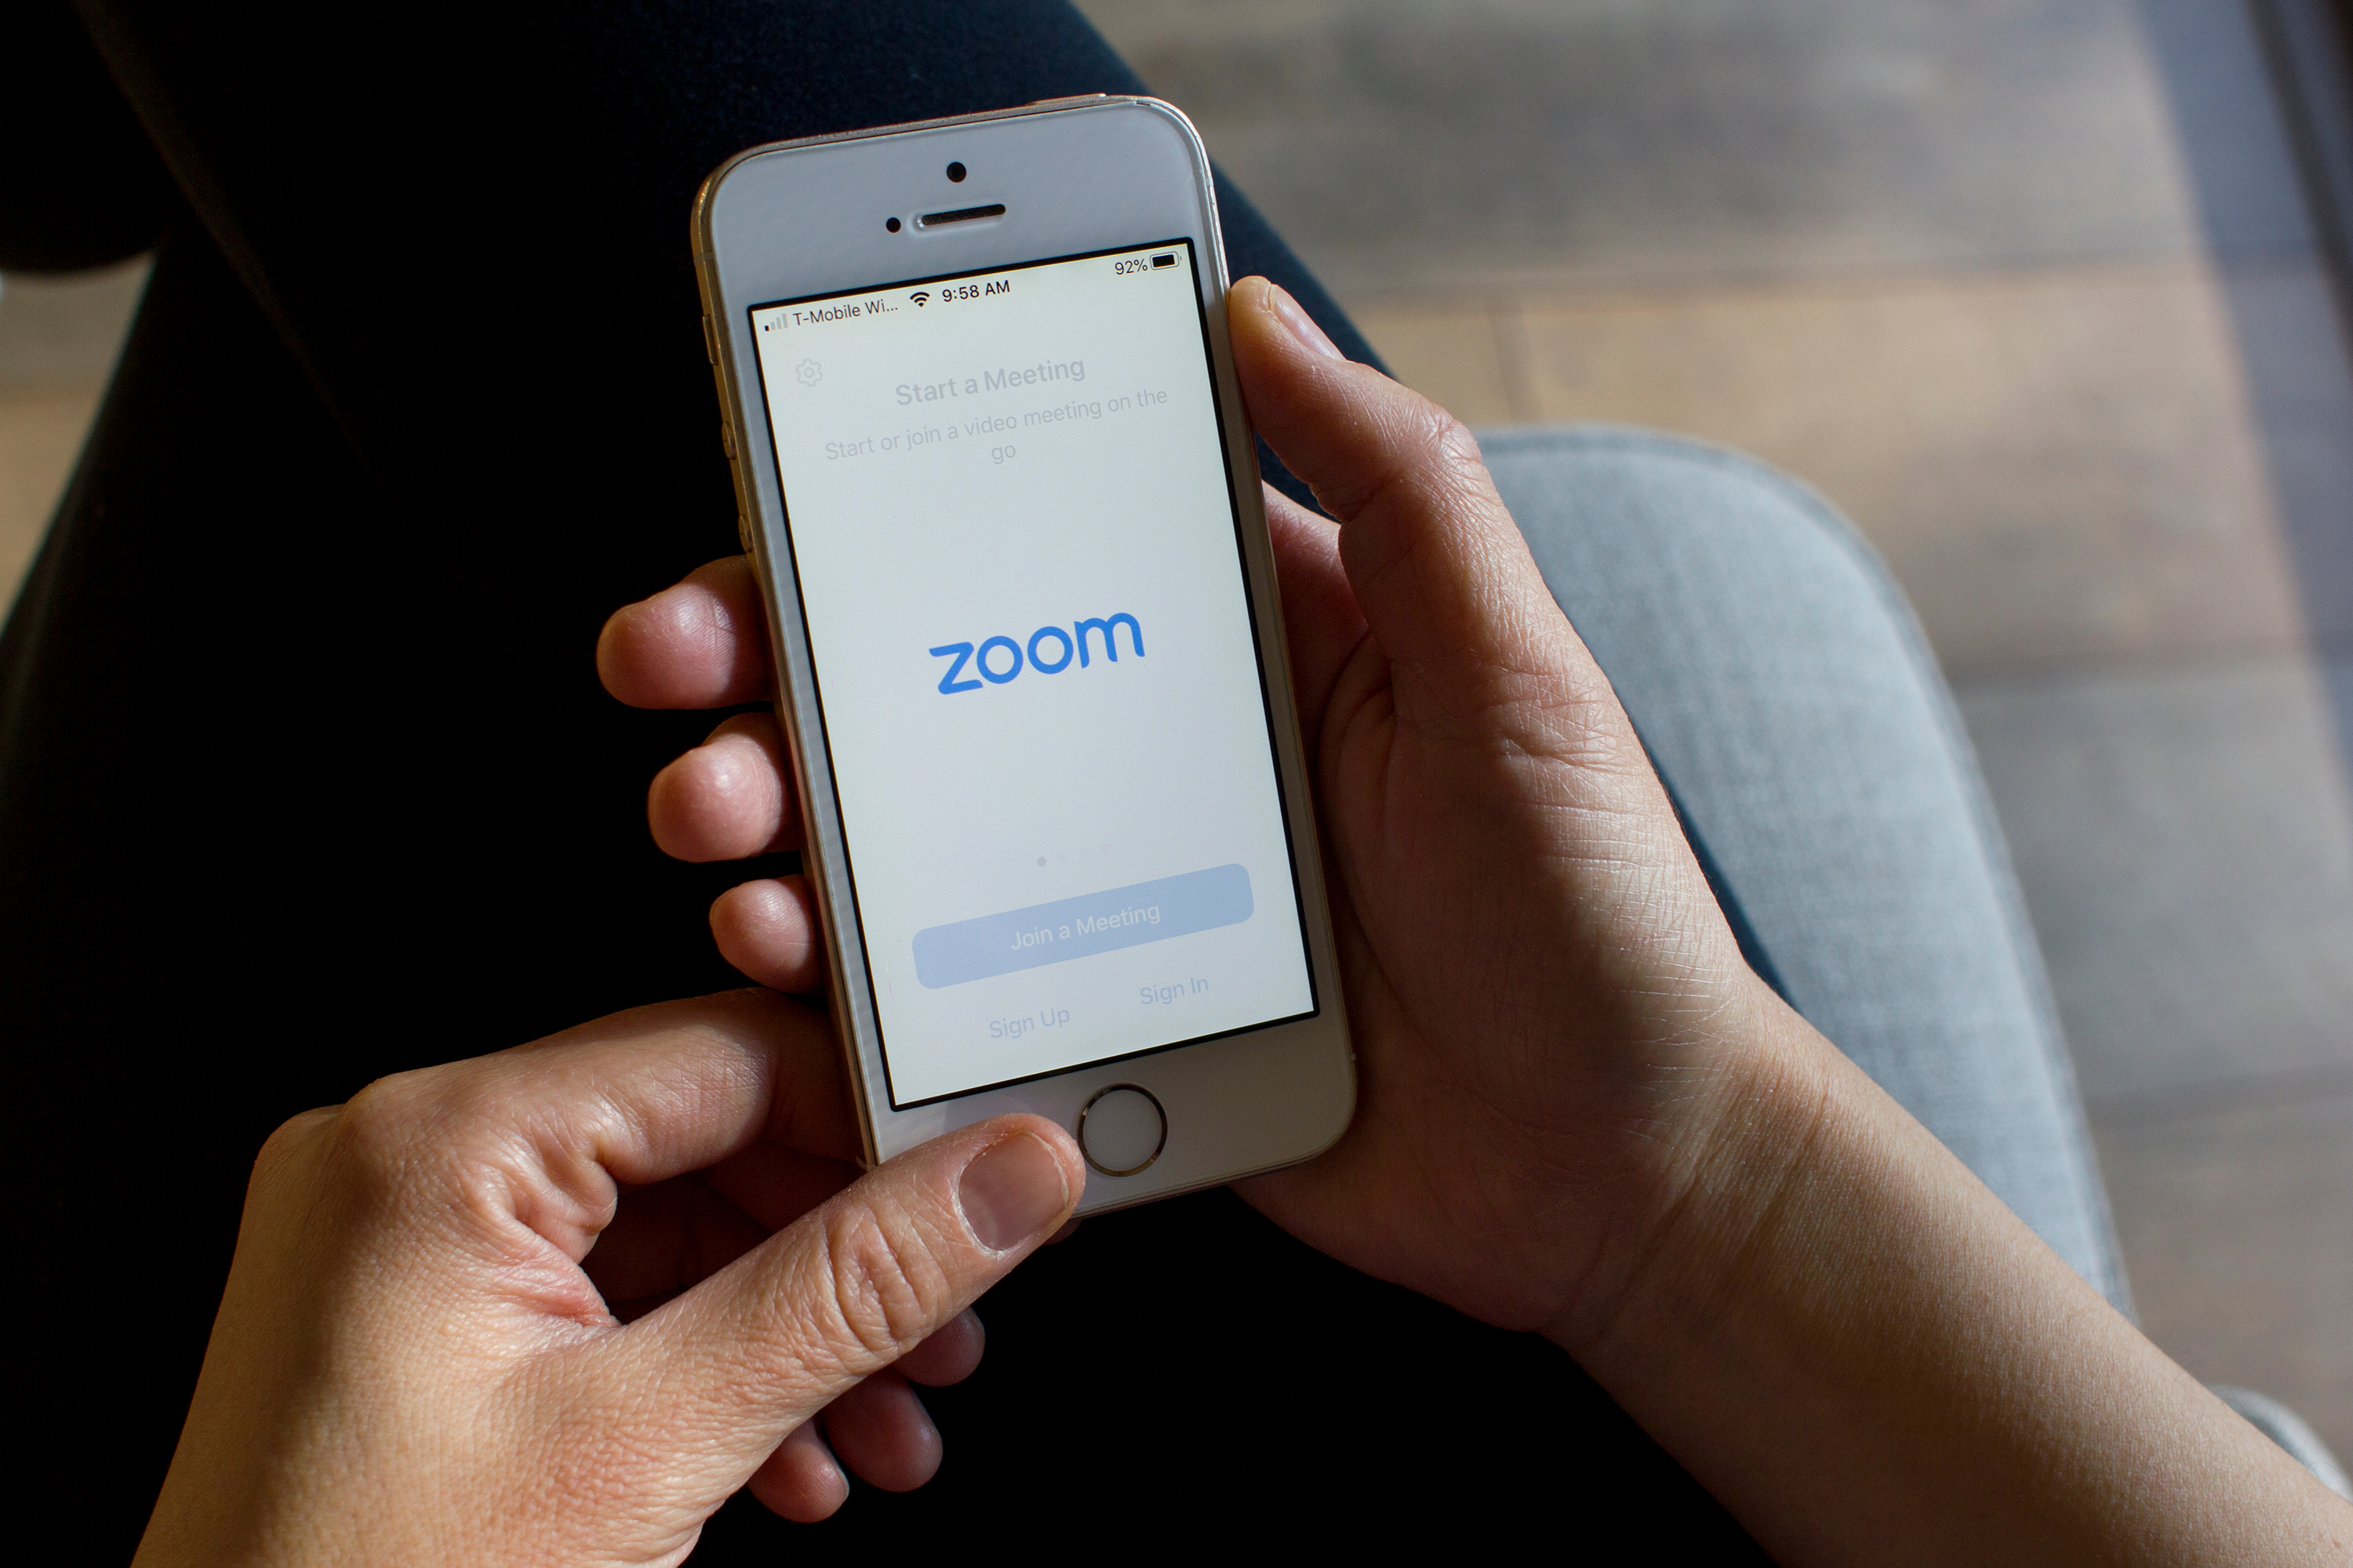 New York City schools won't be using Zoom anymore because of security concerns